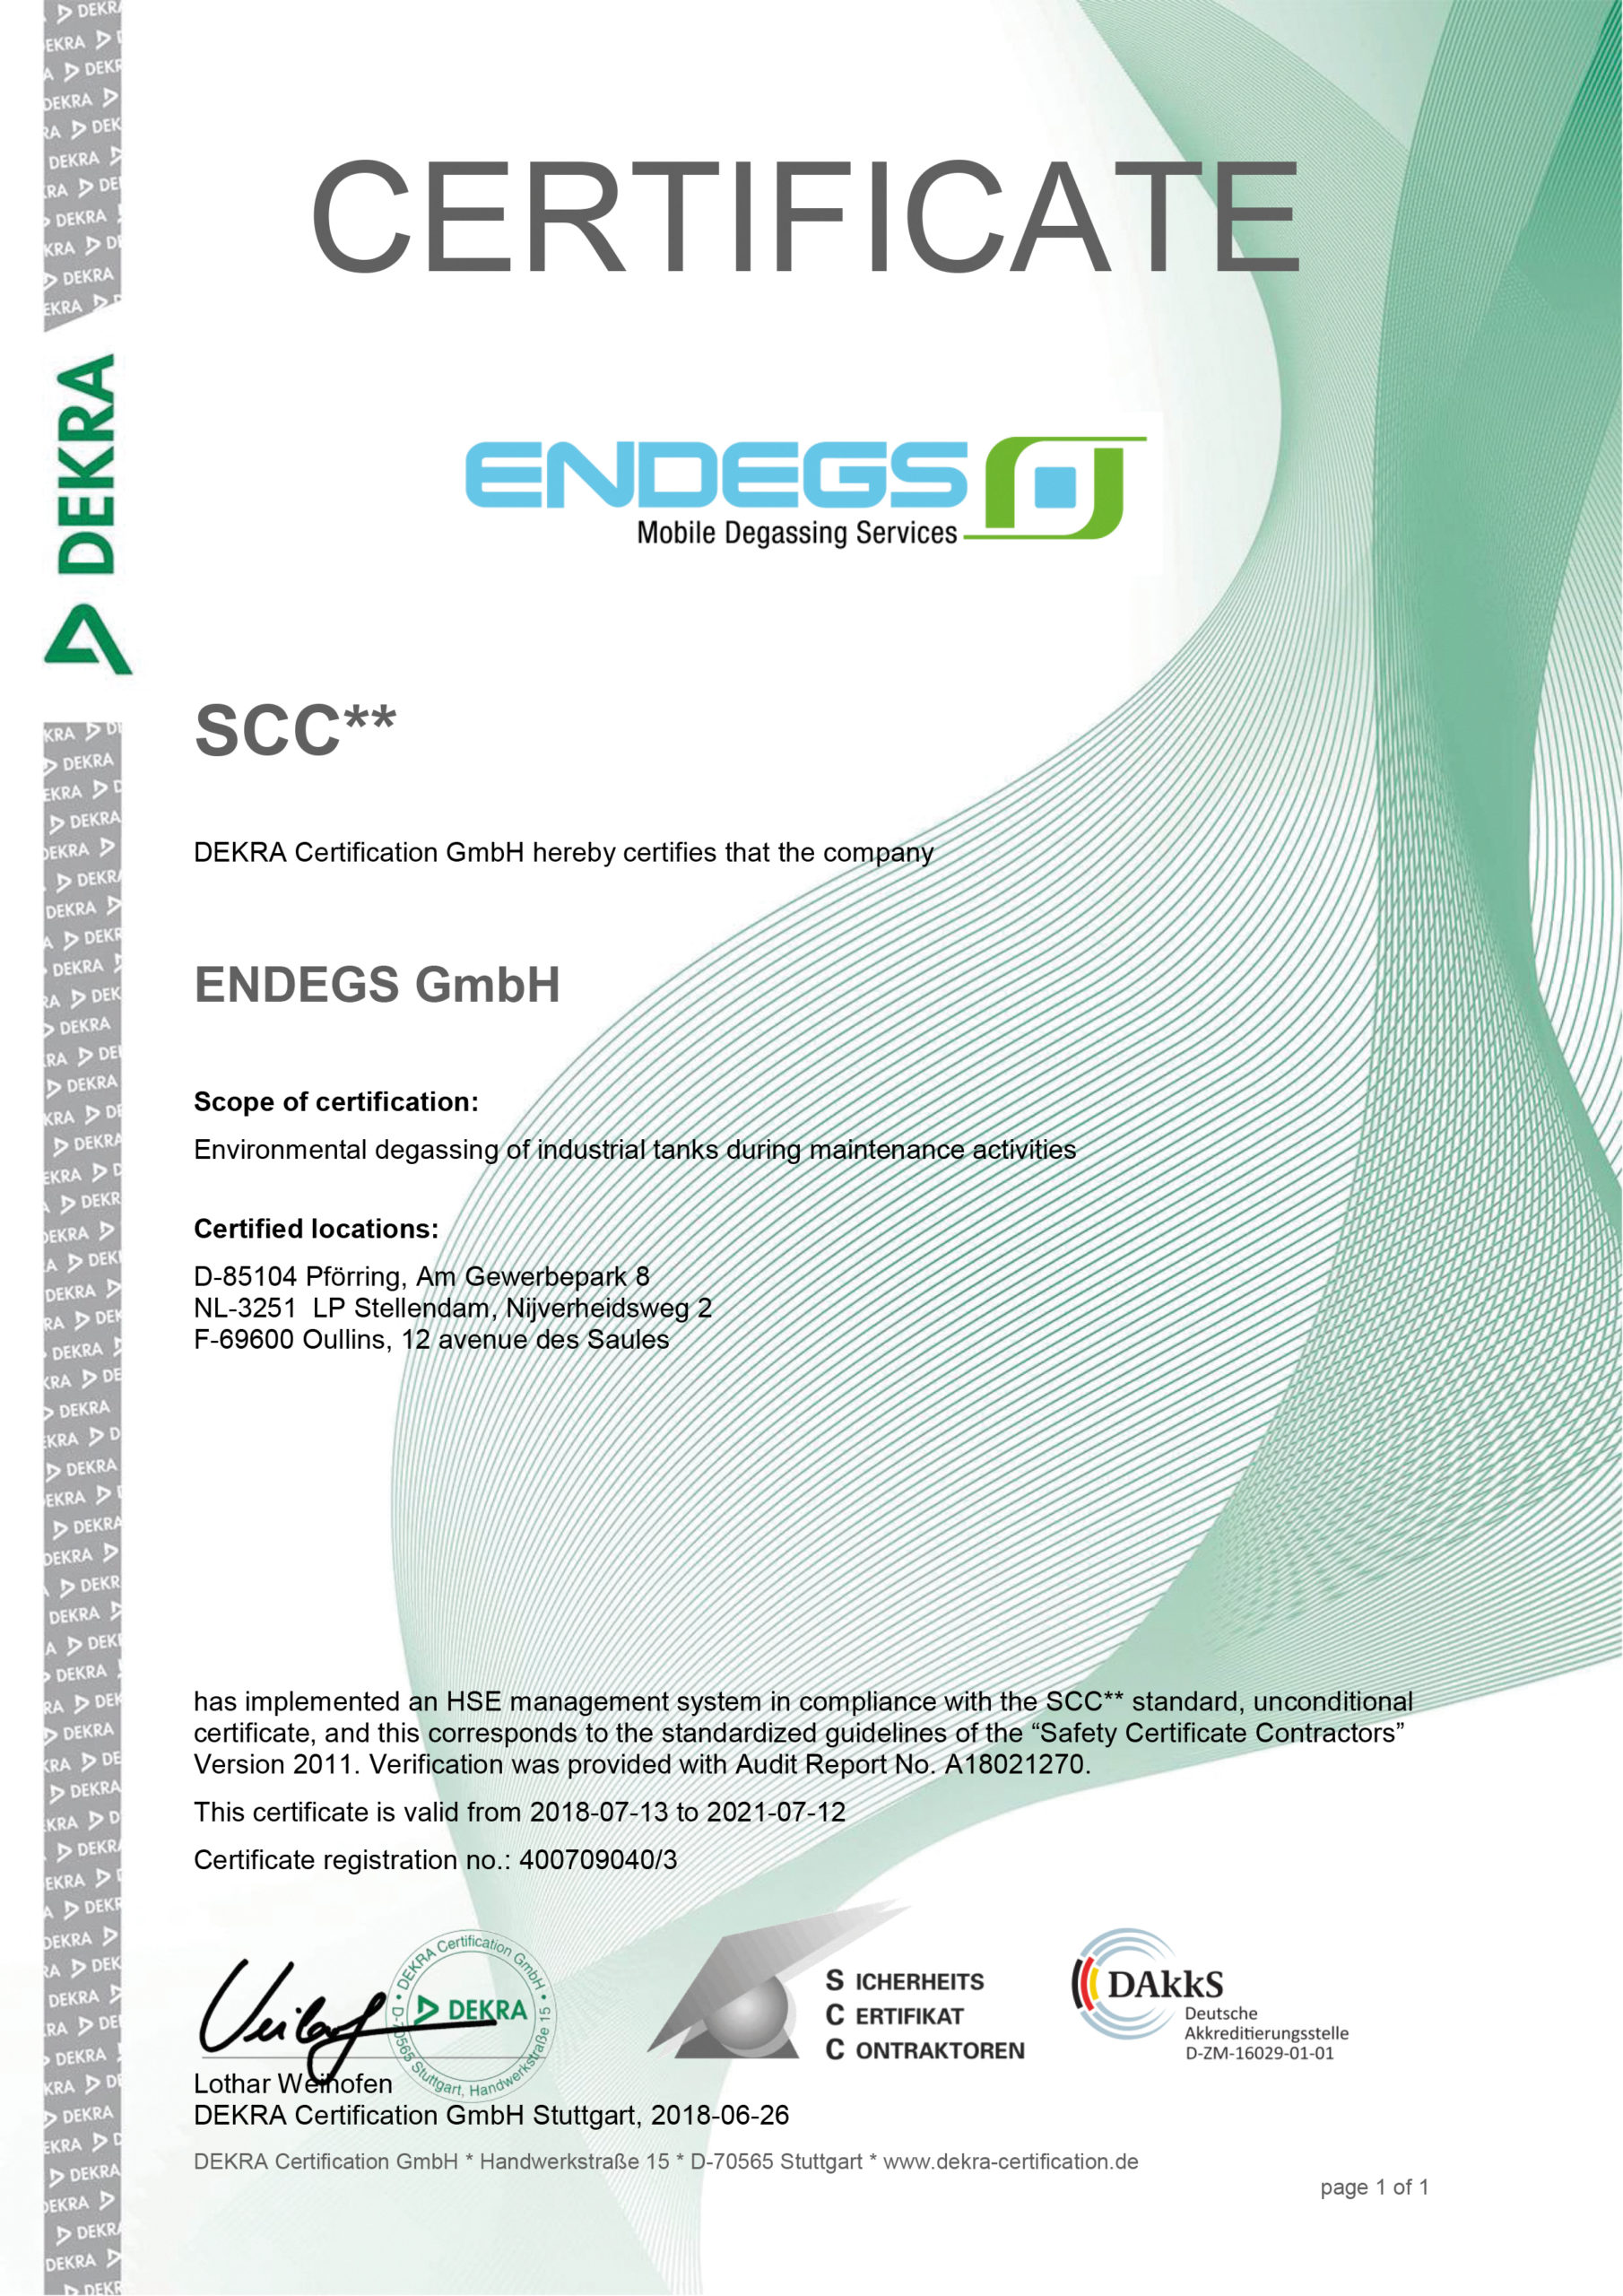 DEKRA Certificate for ENDEGS for industrial degassing of industrial tanks during maintenance activities